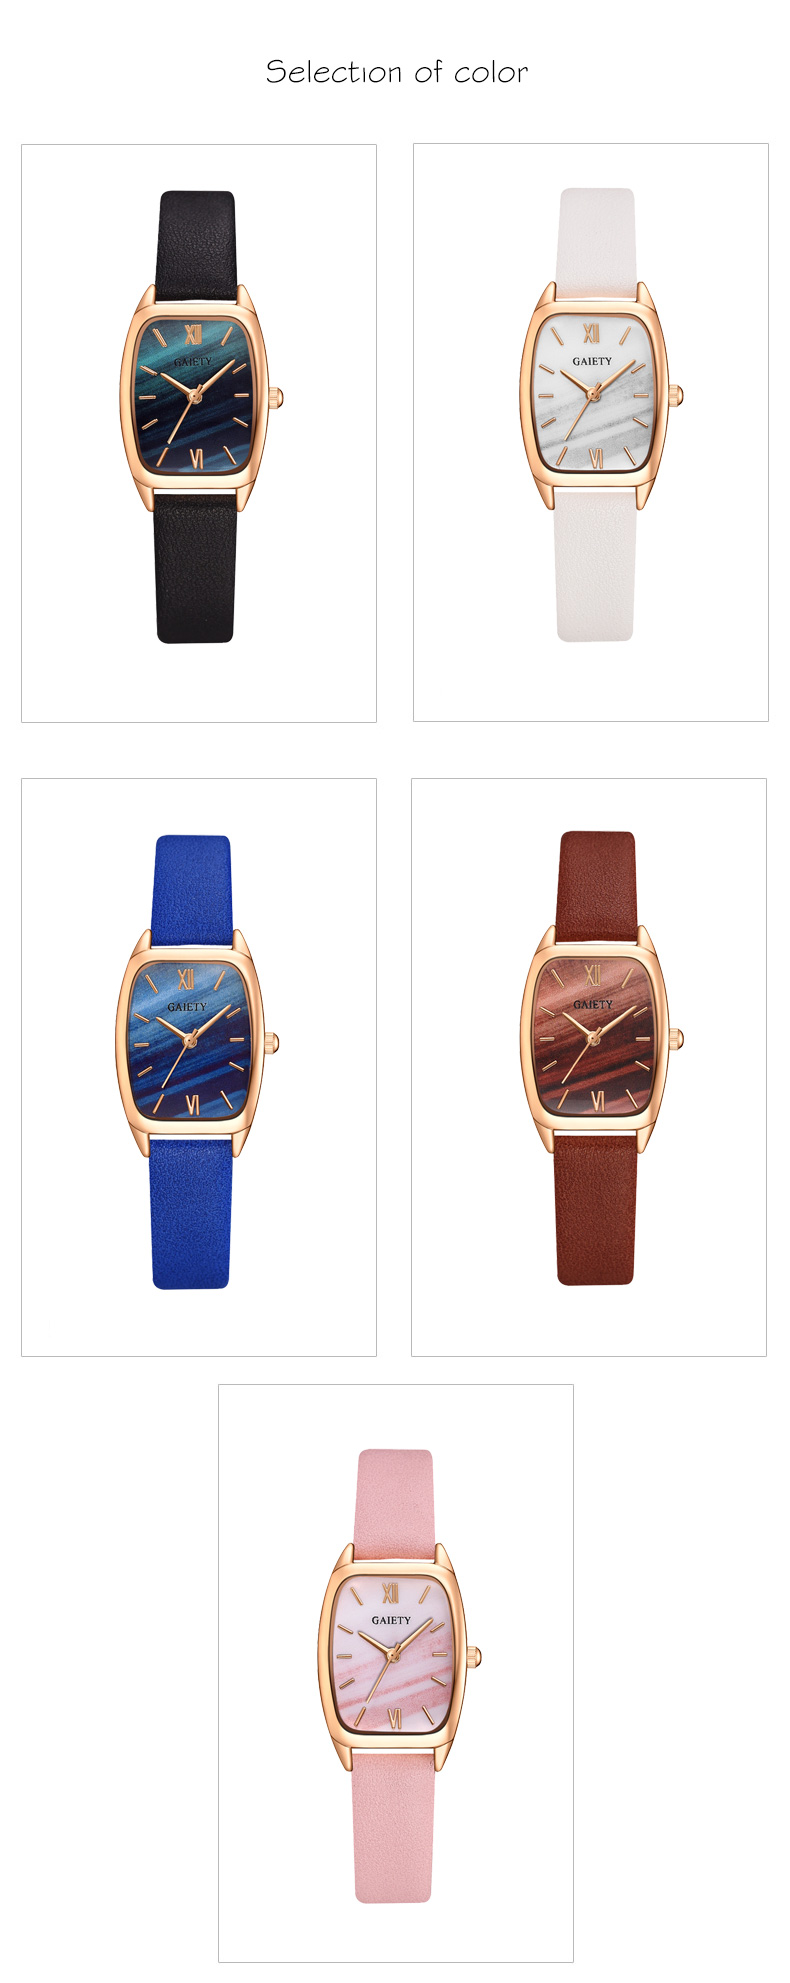 Exquisite small simple women dress watches retro leather female clock Top brand women's fashion mini design wristwatches clock H7df6a59fc3624fadb7407f5d48af5a84S